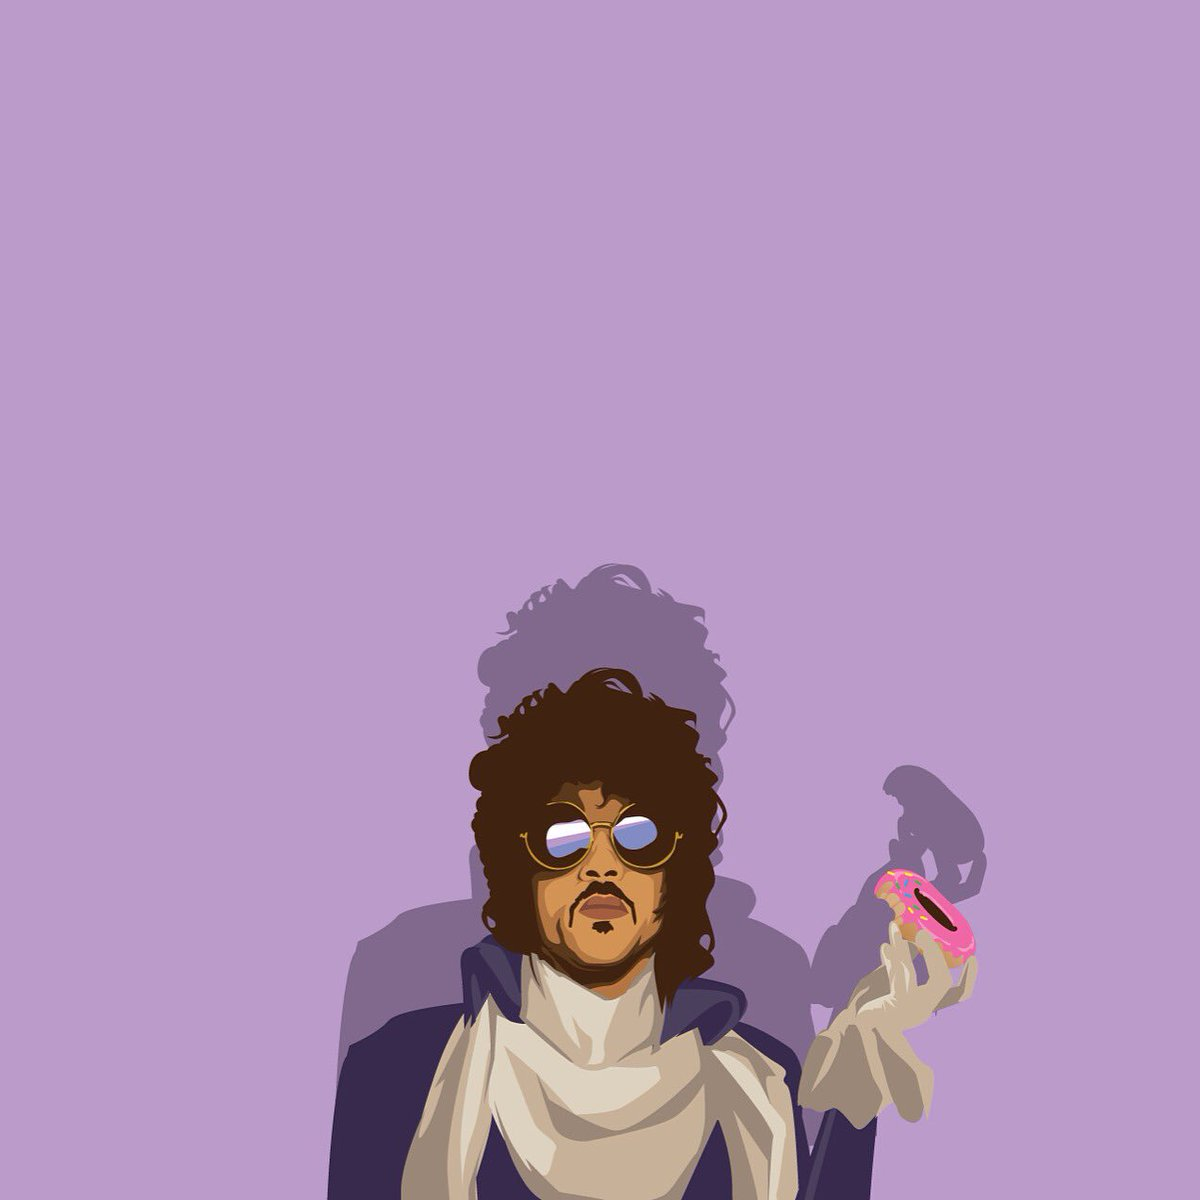 My tribute to #Prince https://t.co/7iqHQS8ukf